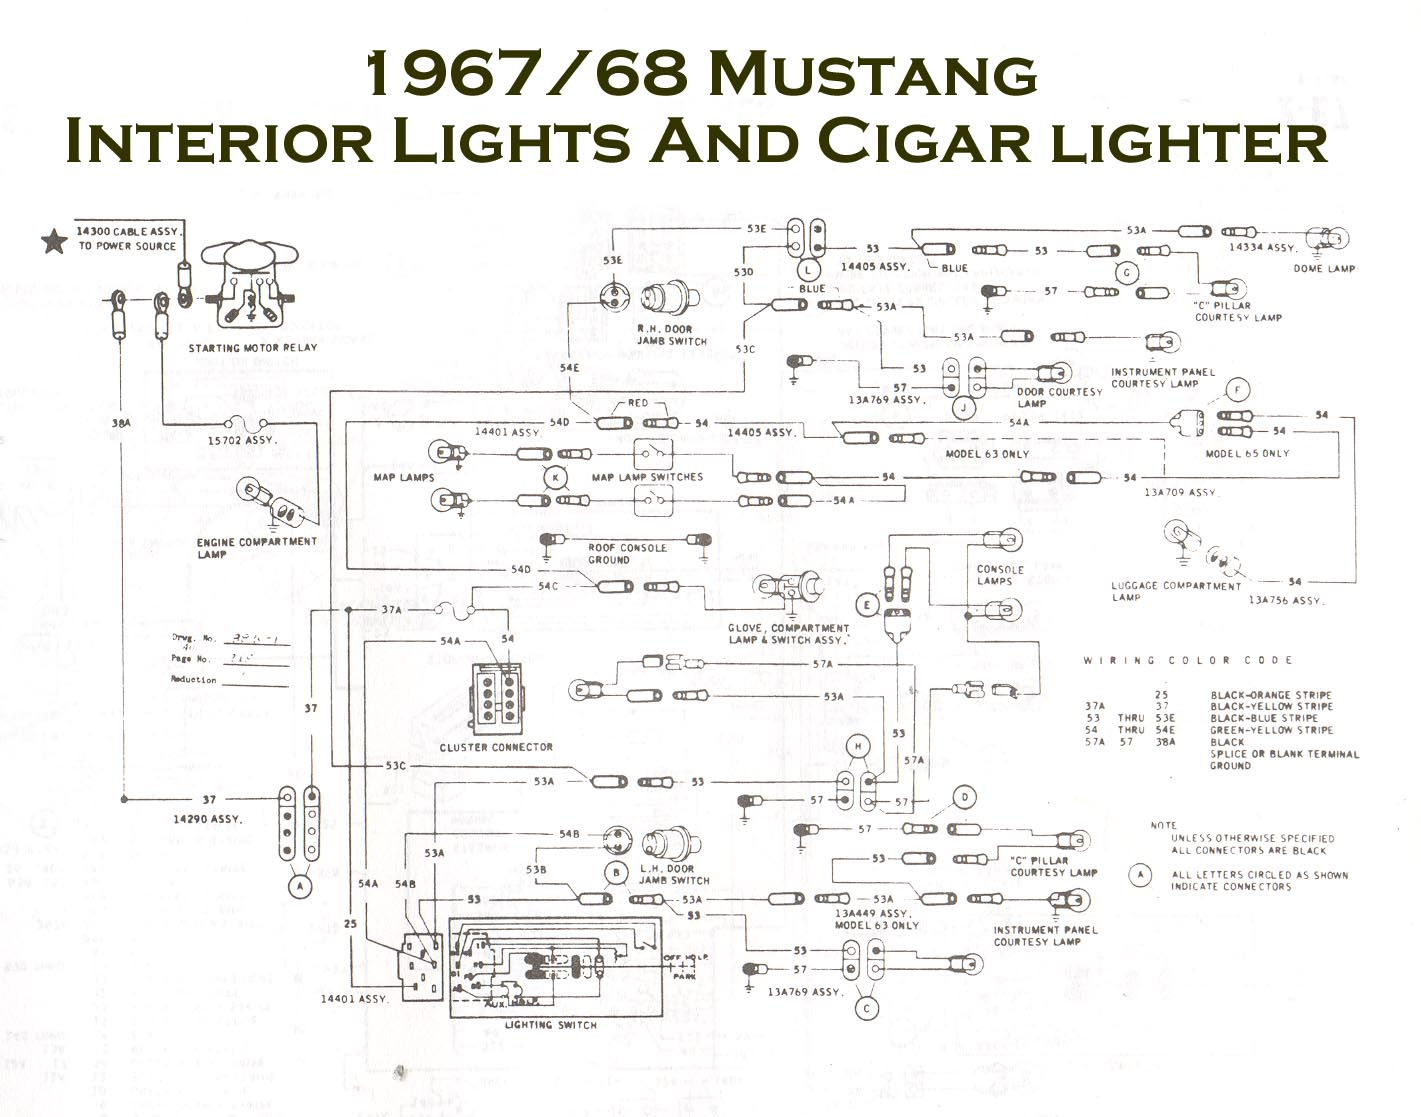 1967 68_console_wiring_diagram 2000 mustang gt wiring diagram 2000 mustang schematics \u2022 free 1969 mustang dash wiring diagram at fashall.co